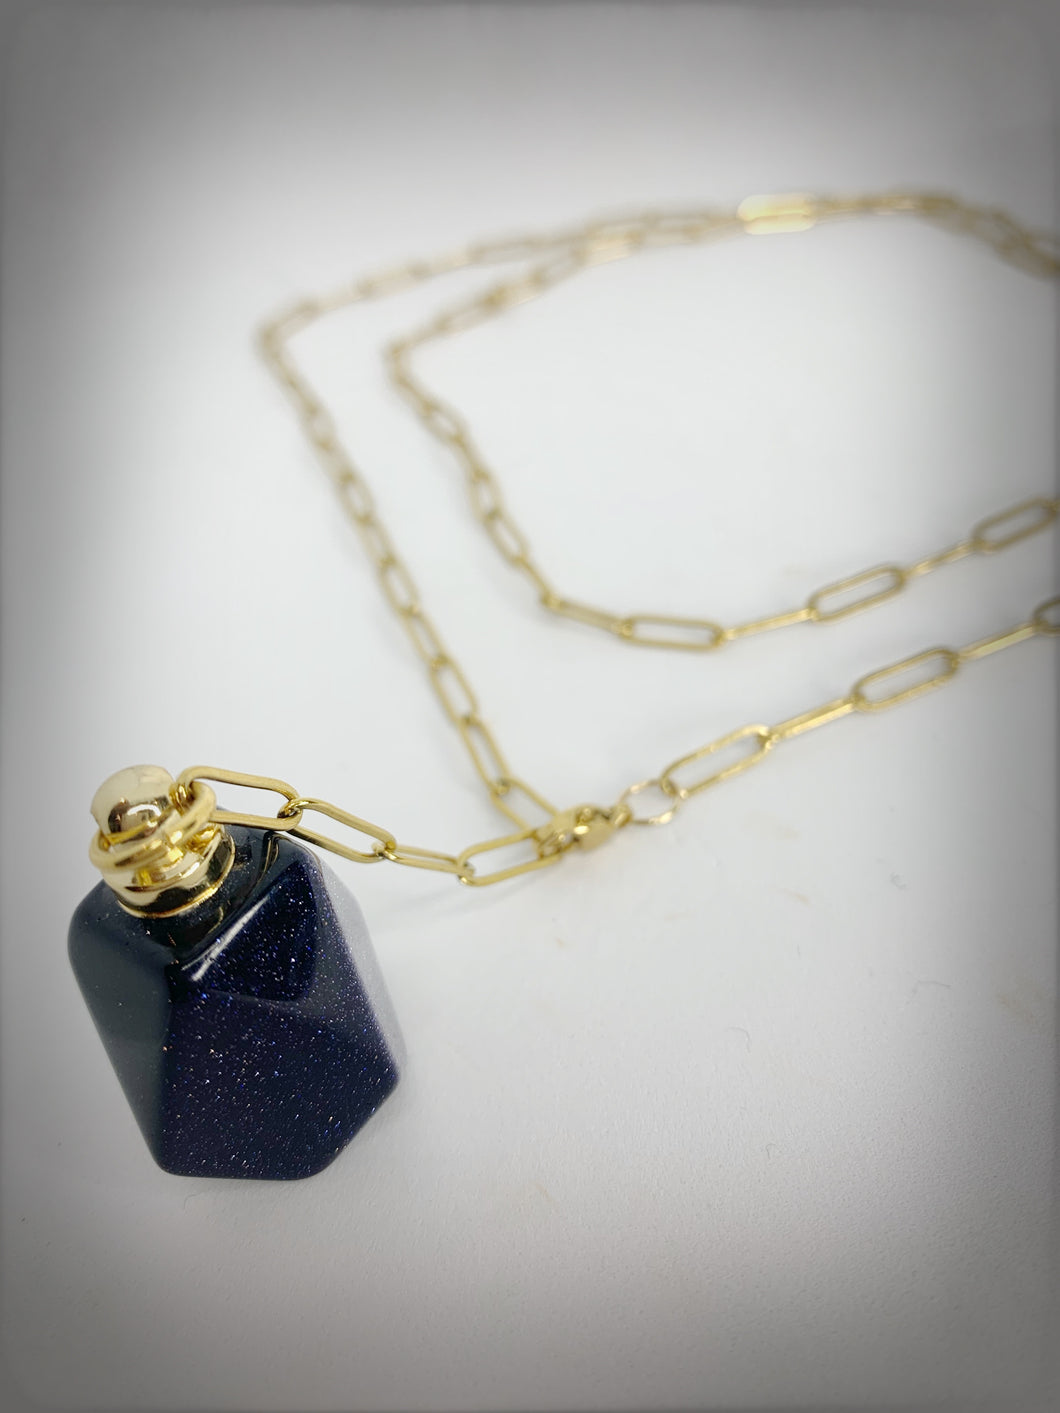 RAW COLLECTION - Bluestone Stone Essential Oil Bottle on Gold Link Chain (Adjustable)